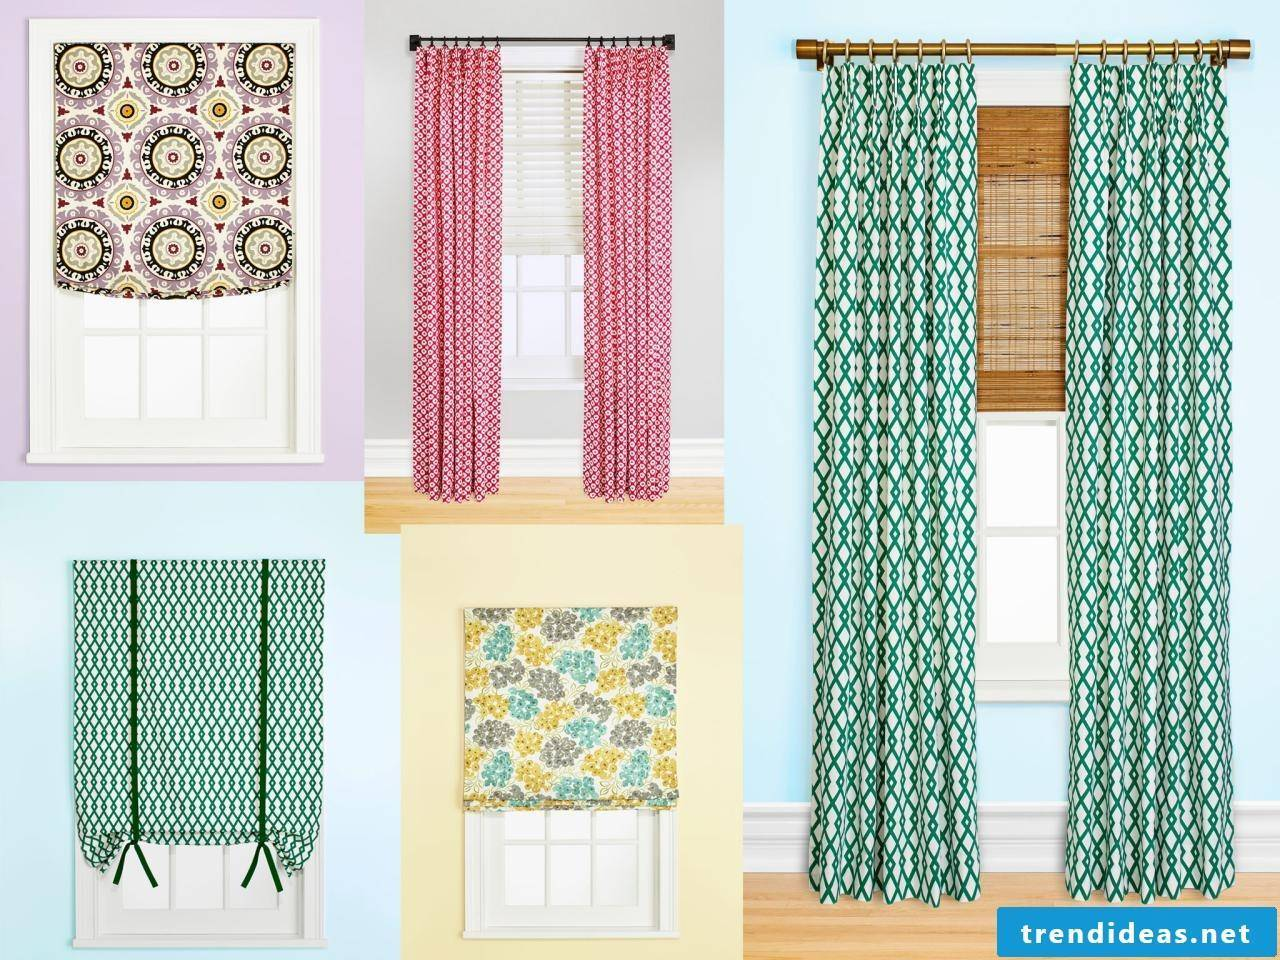 different designs and types of curtains